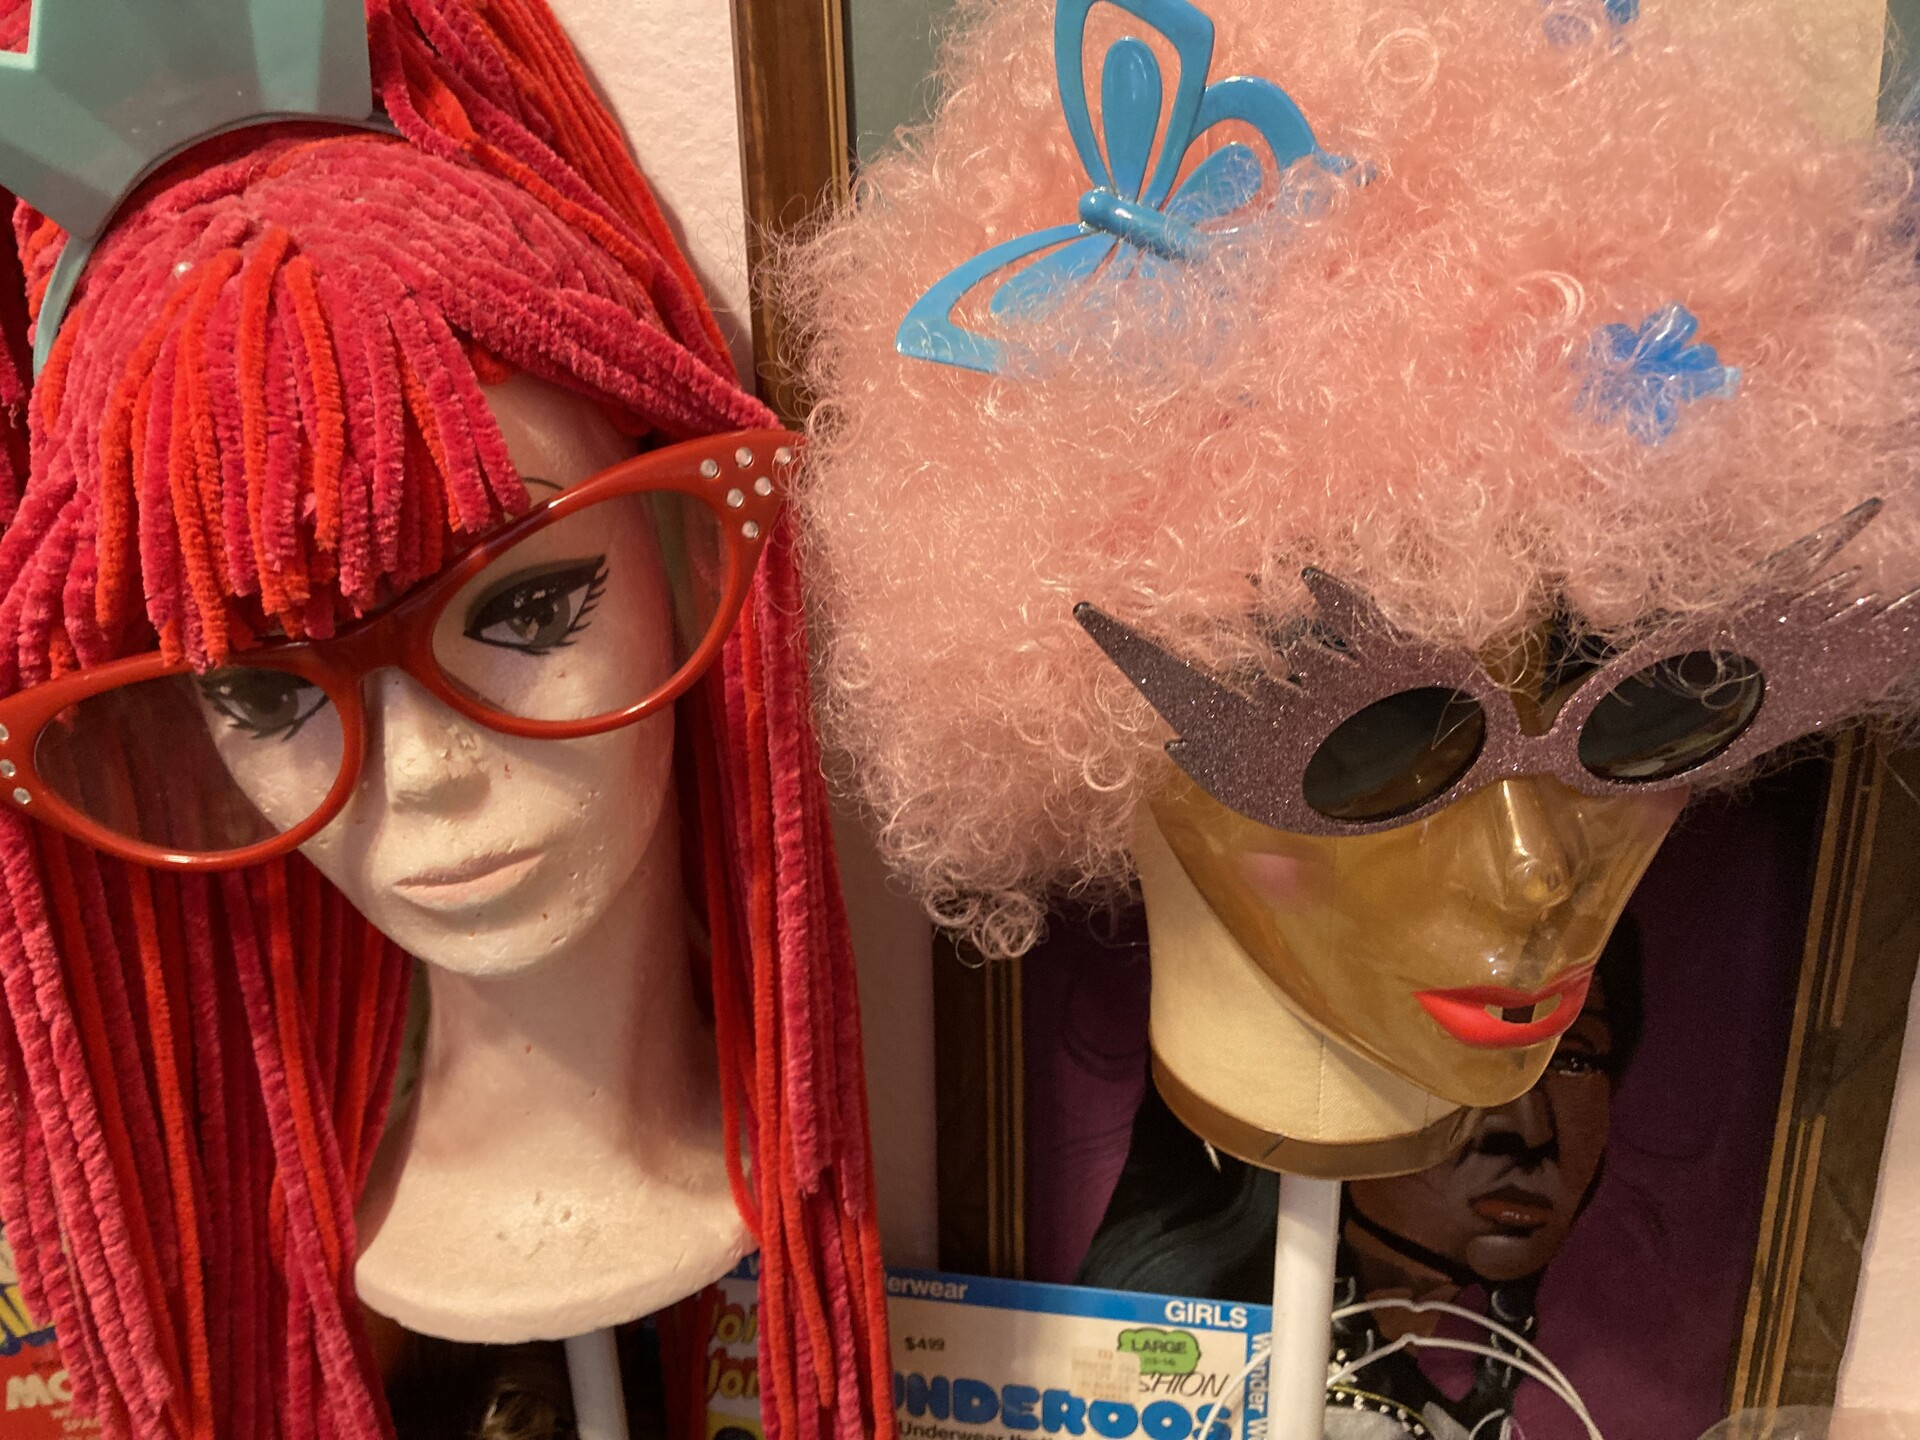 Two mannequin heads sit with a red raggedy-anne wig and a pink curly-haired wig.